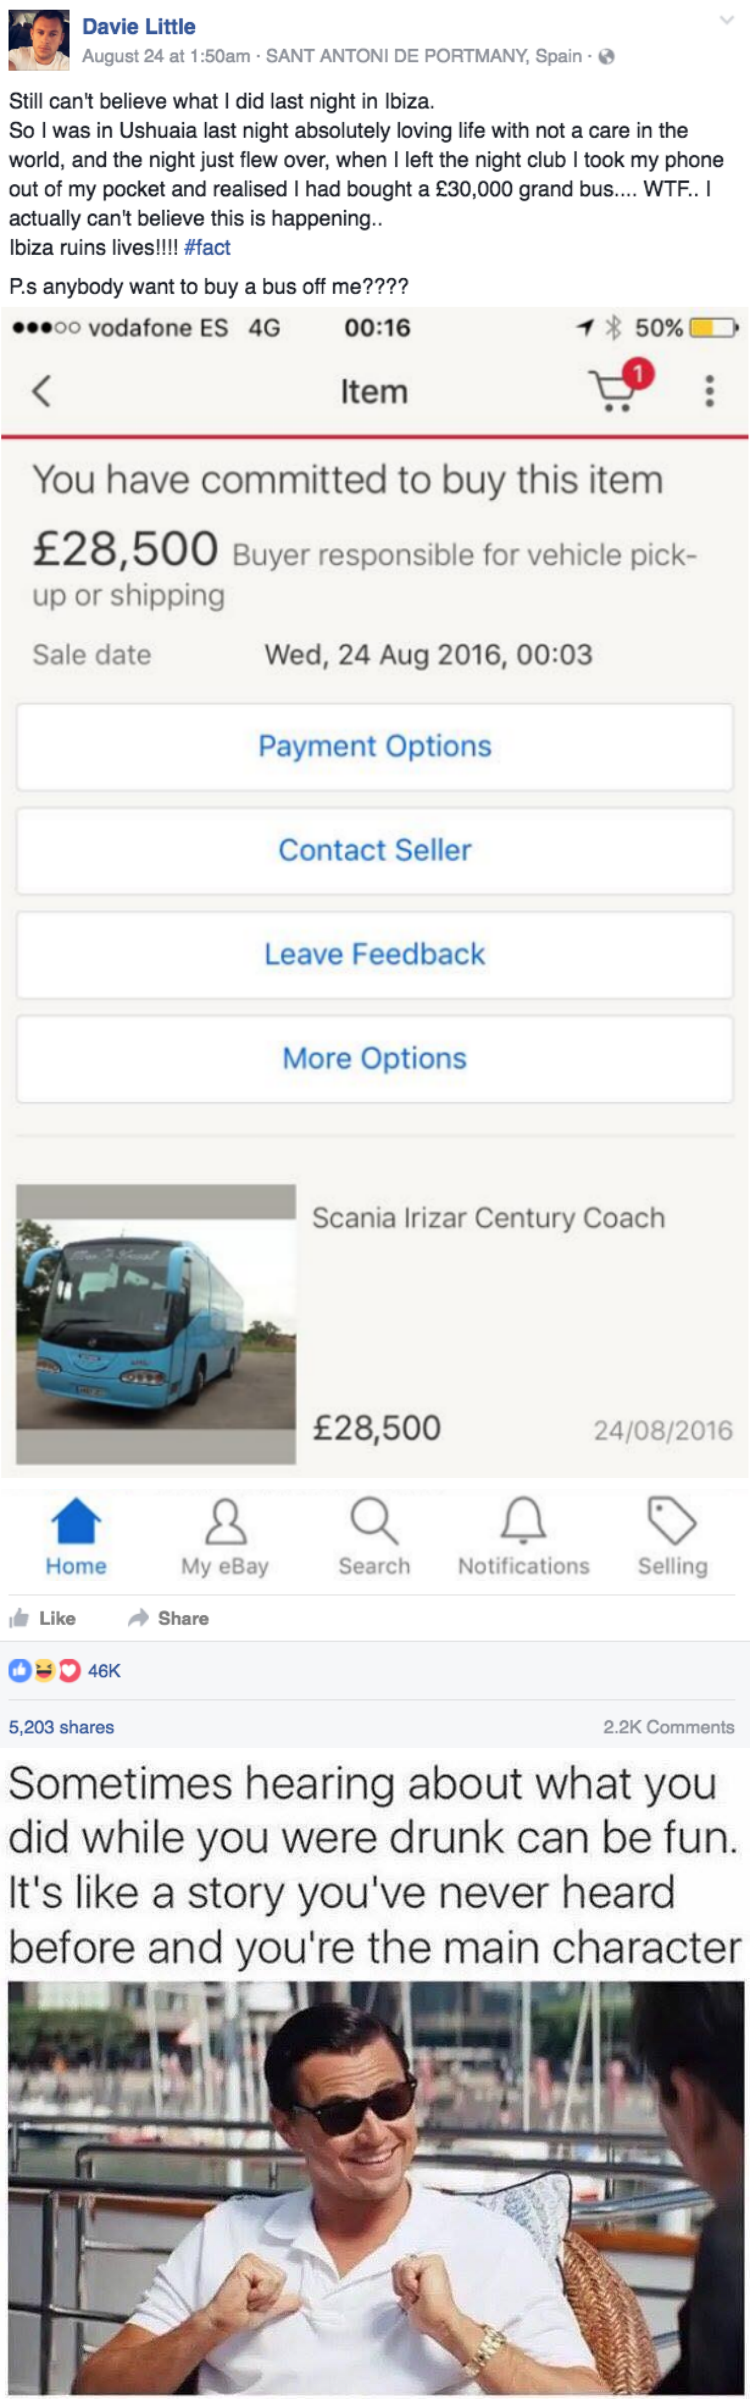 funny fail image guy bought bus online after partying in Ibiza